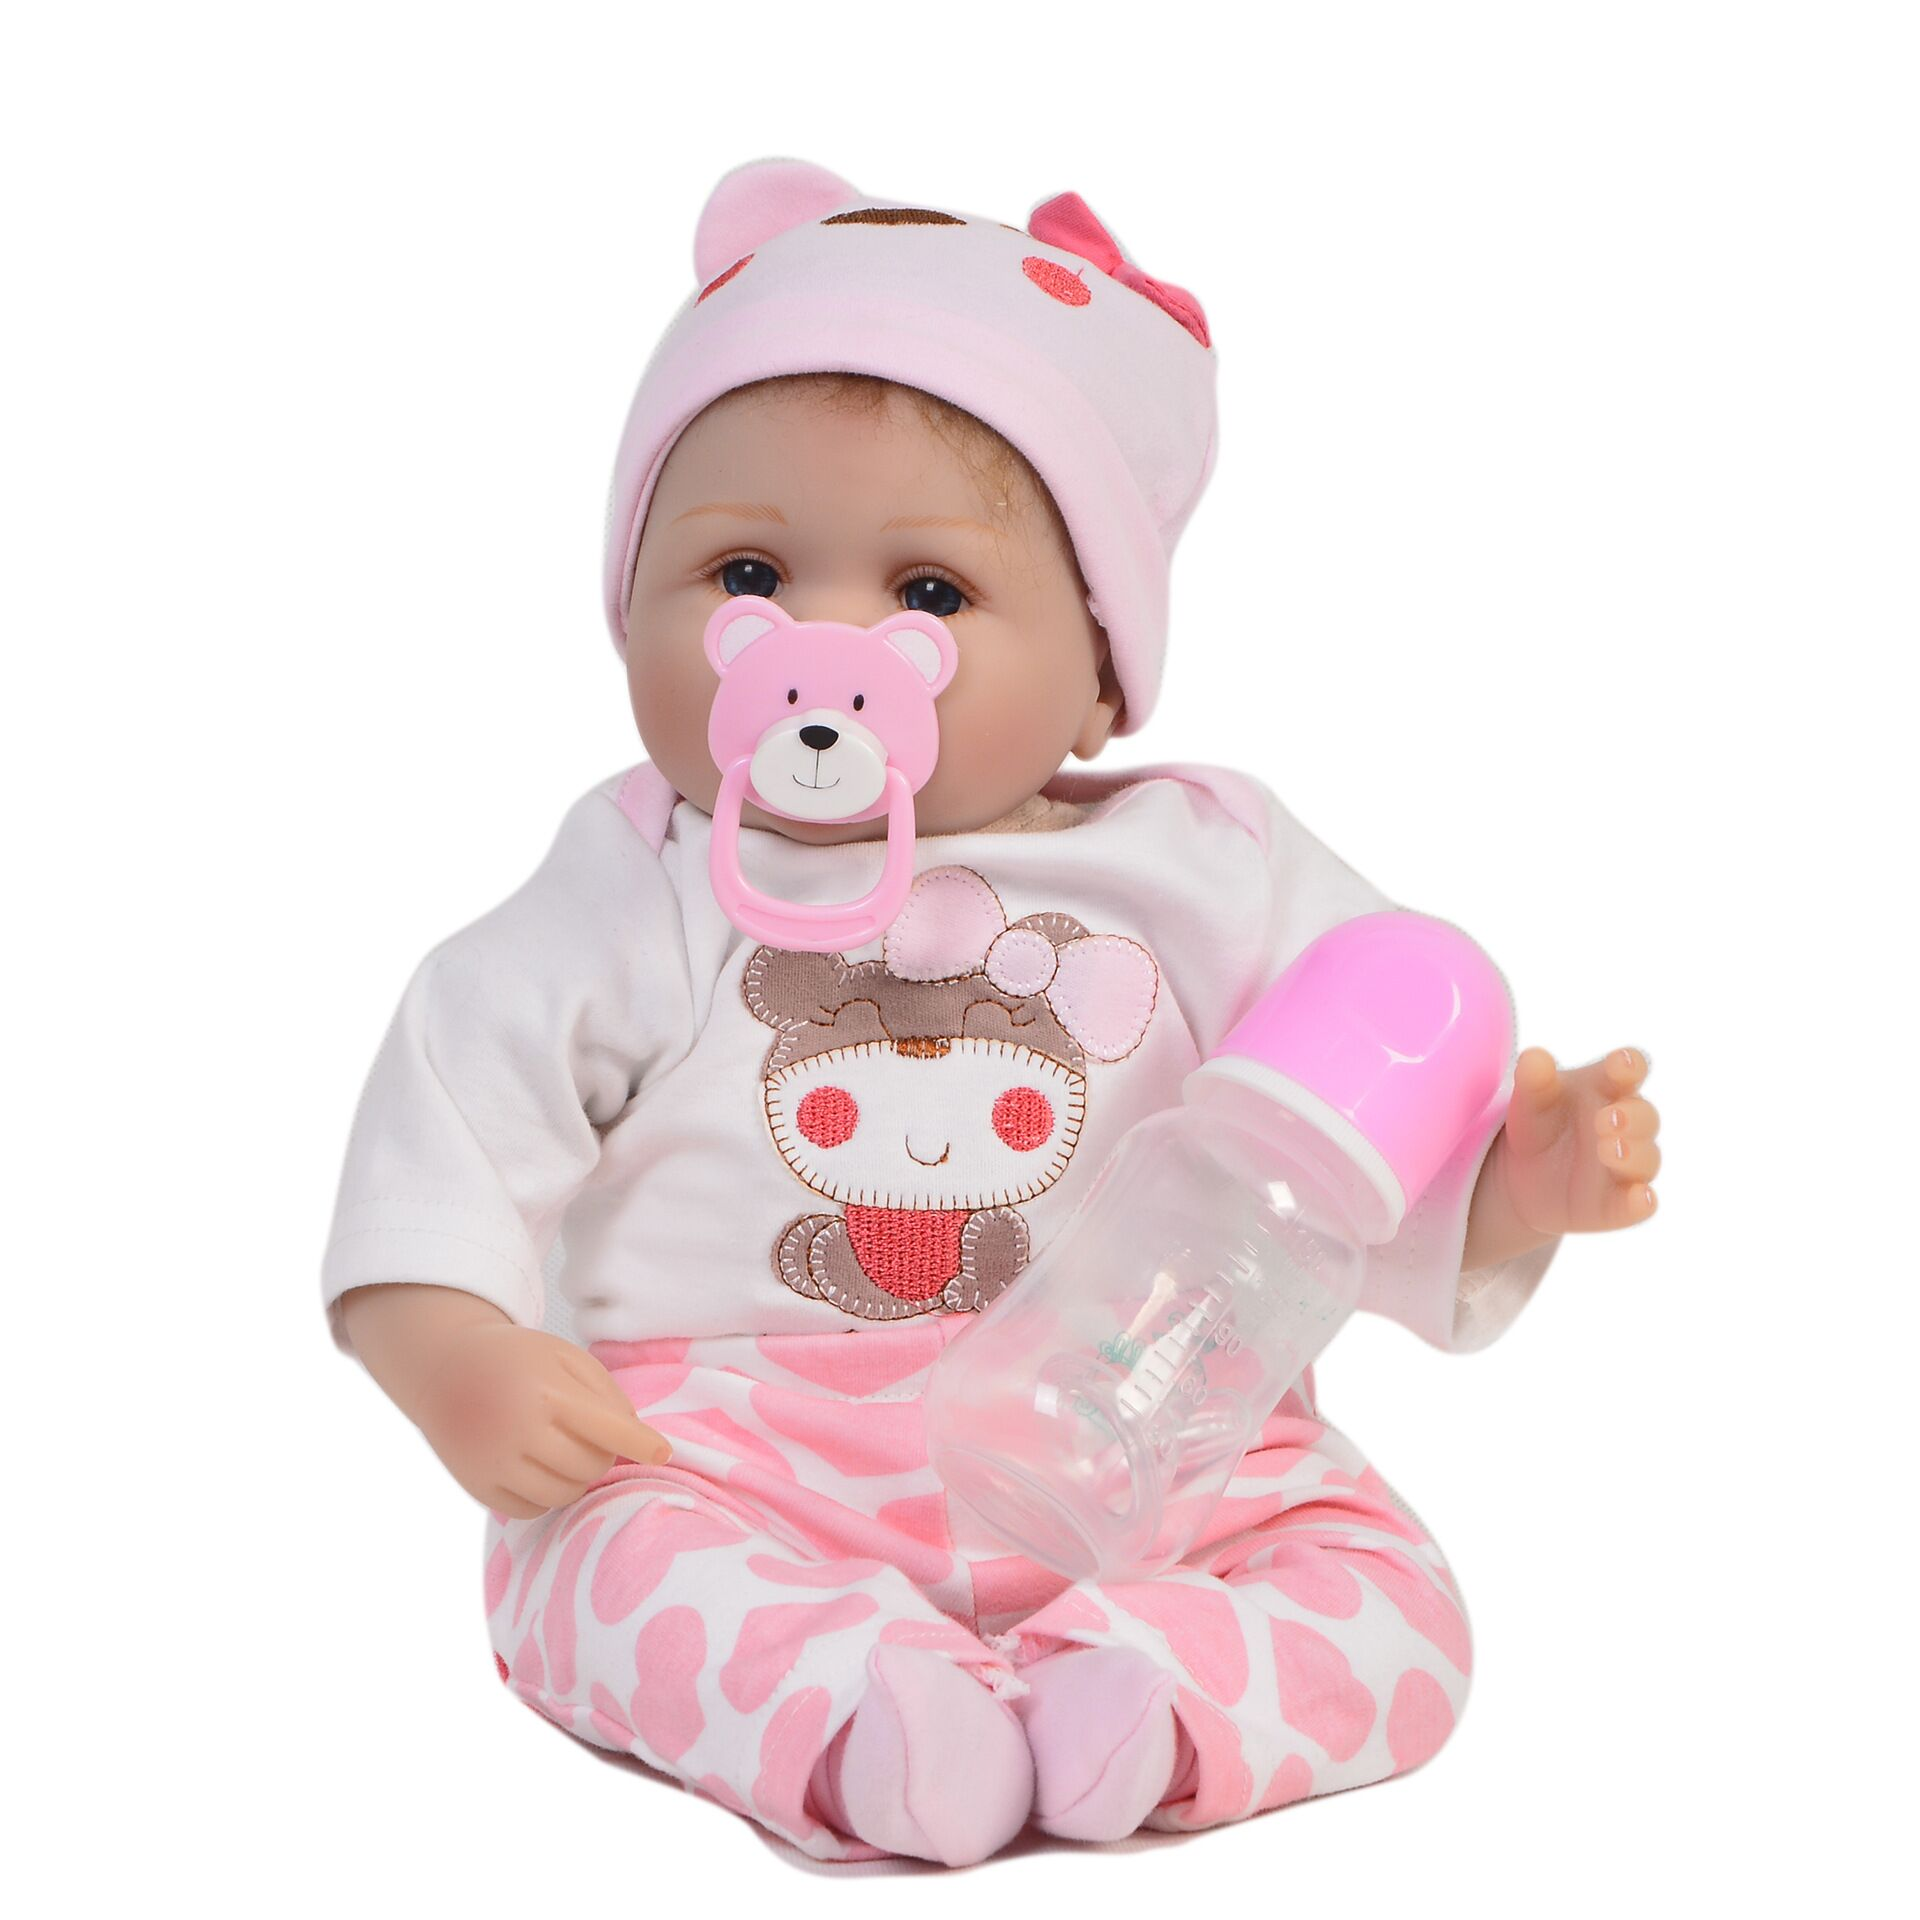 real full body silicone baby bonecas bebe reborn baby <strong>doll</strong>